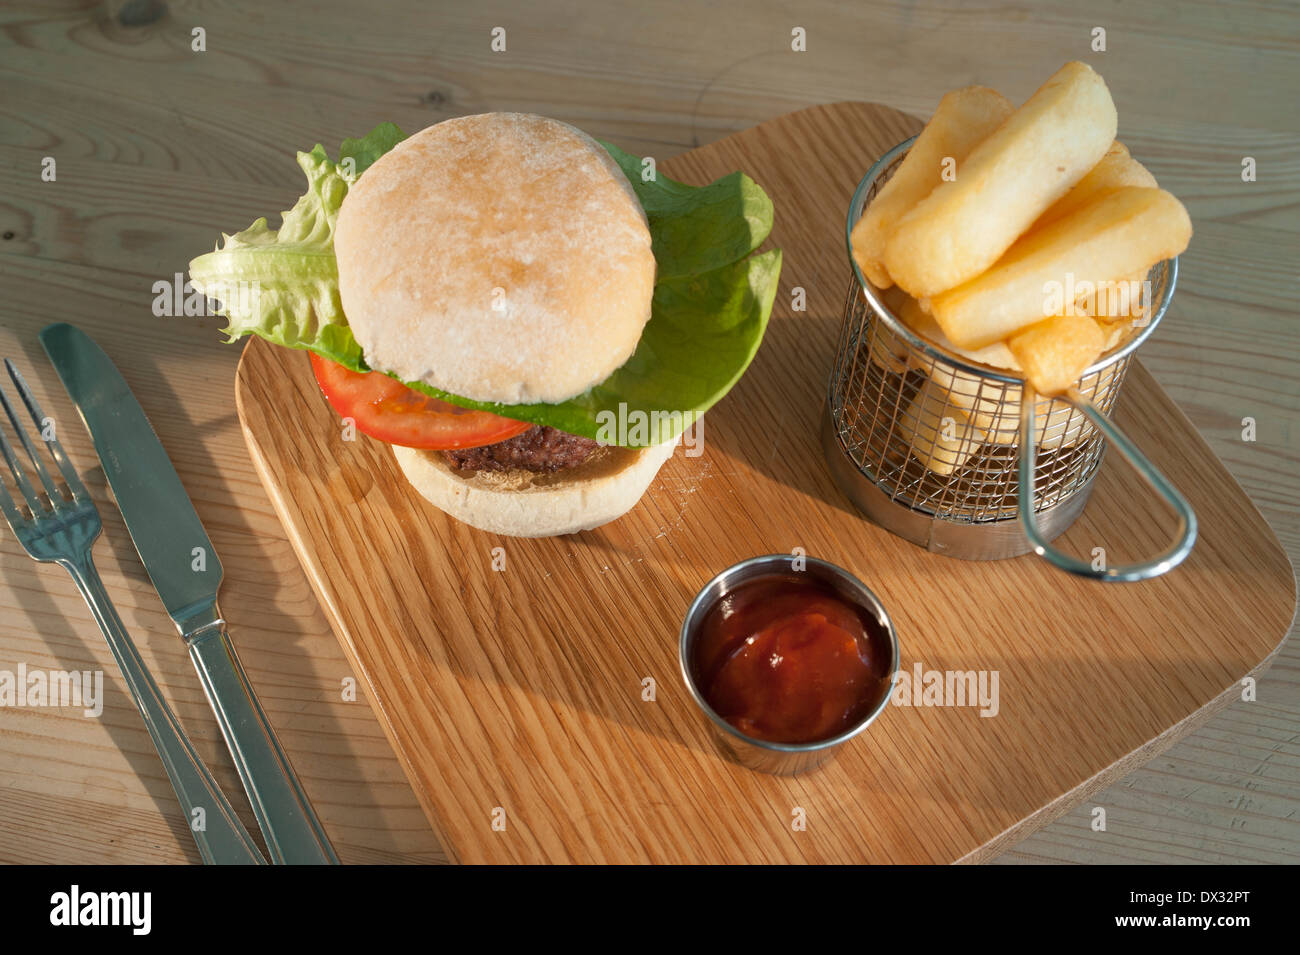 Burger with a salad garnish in a white bread bun with a side order of French fries and tomato ketchup served on Stock Photo